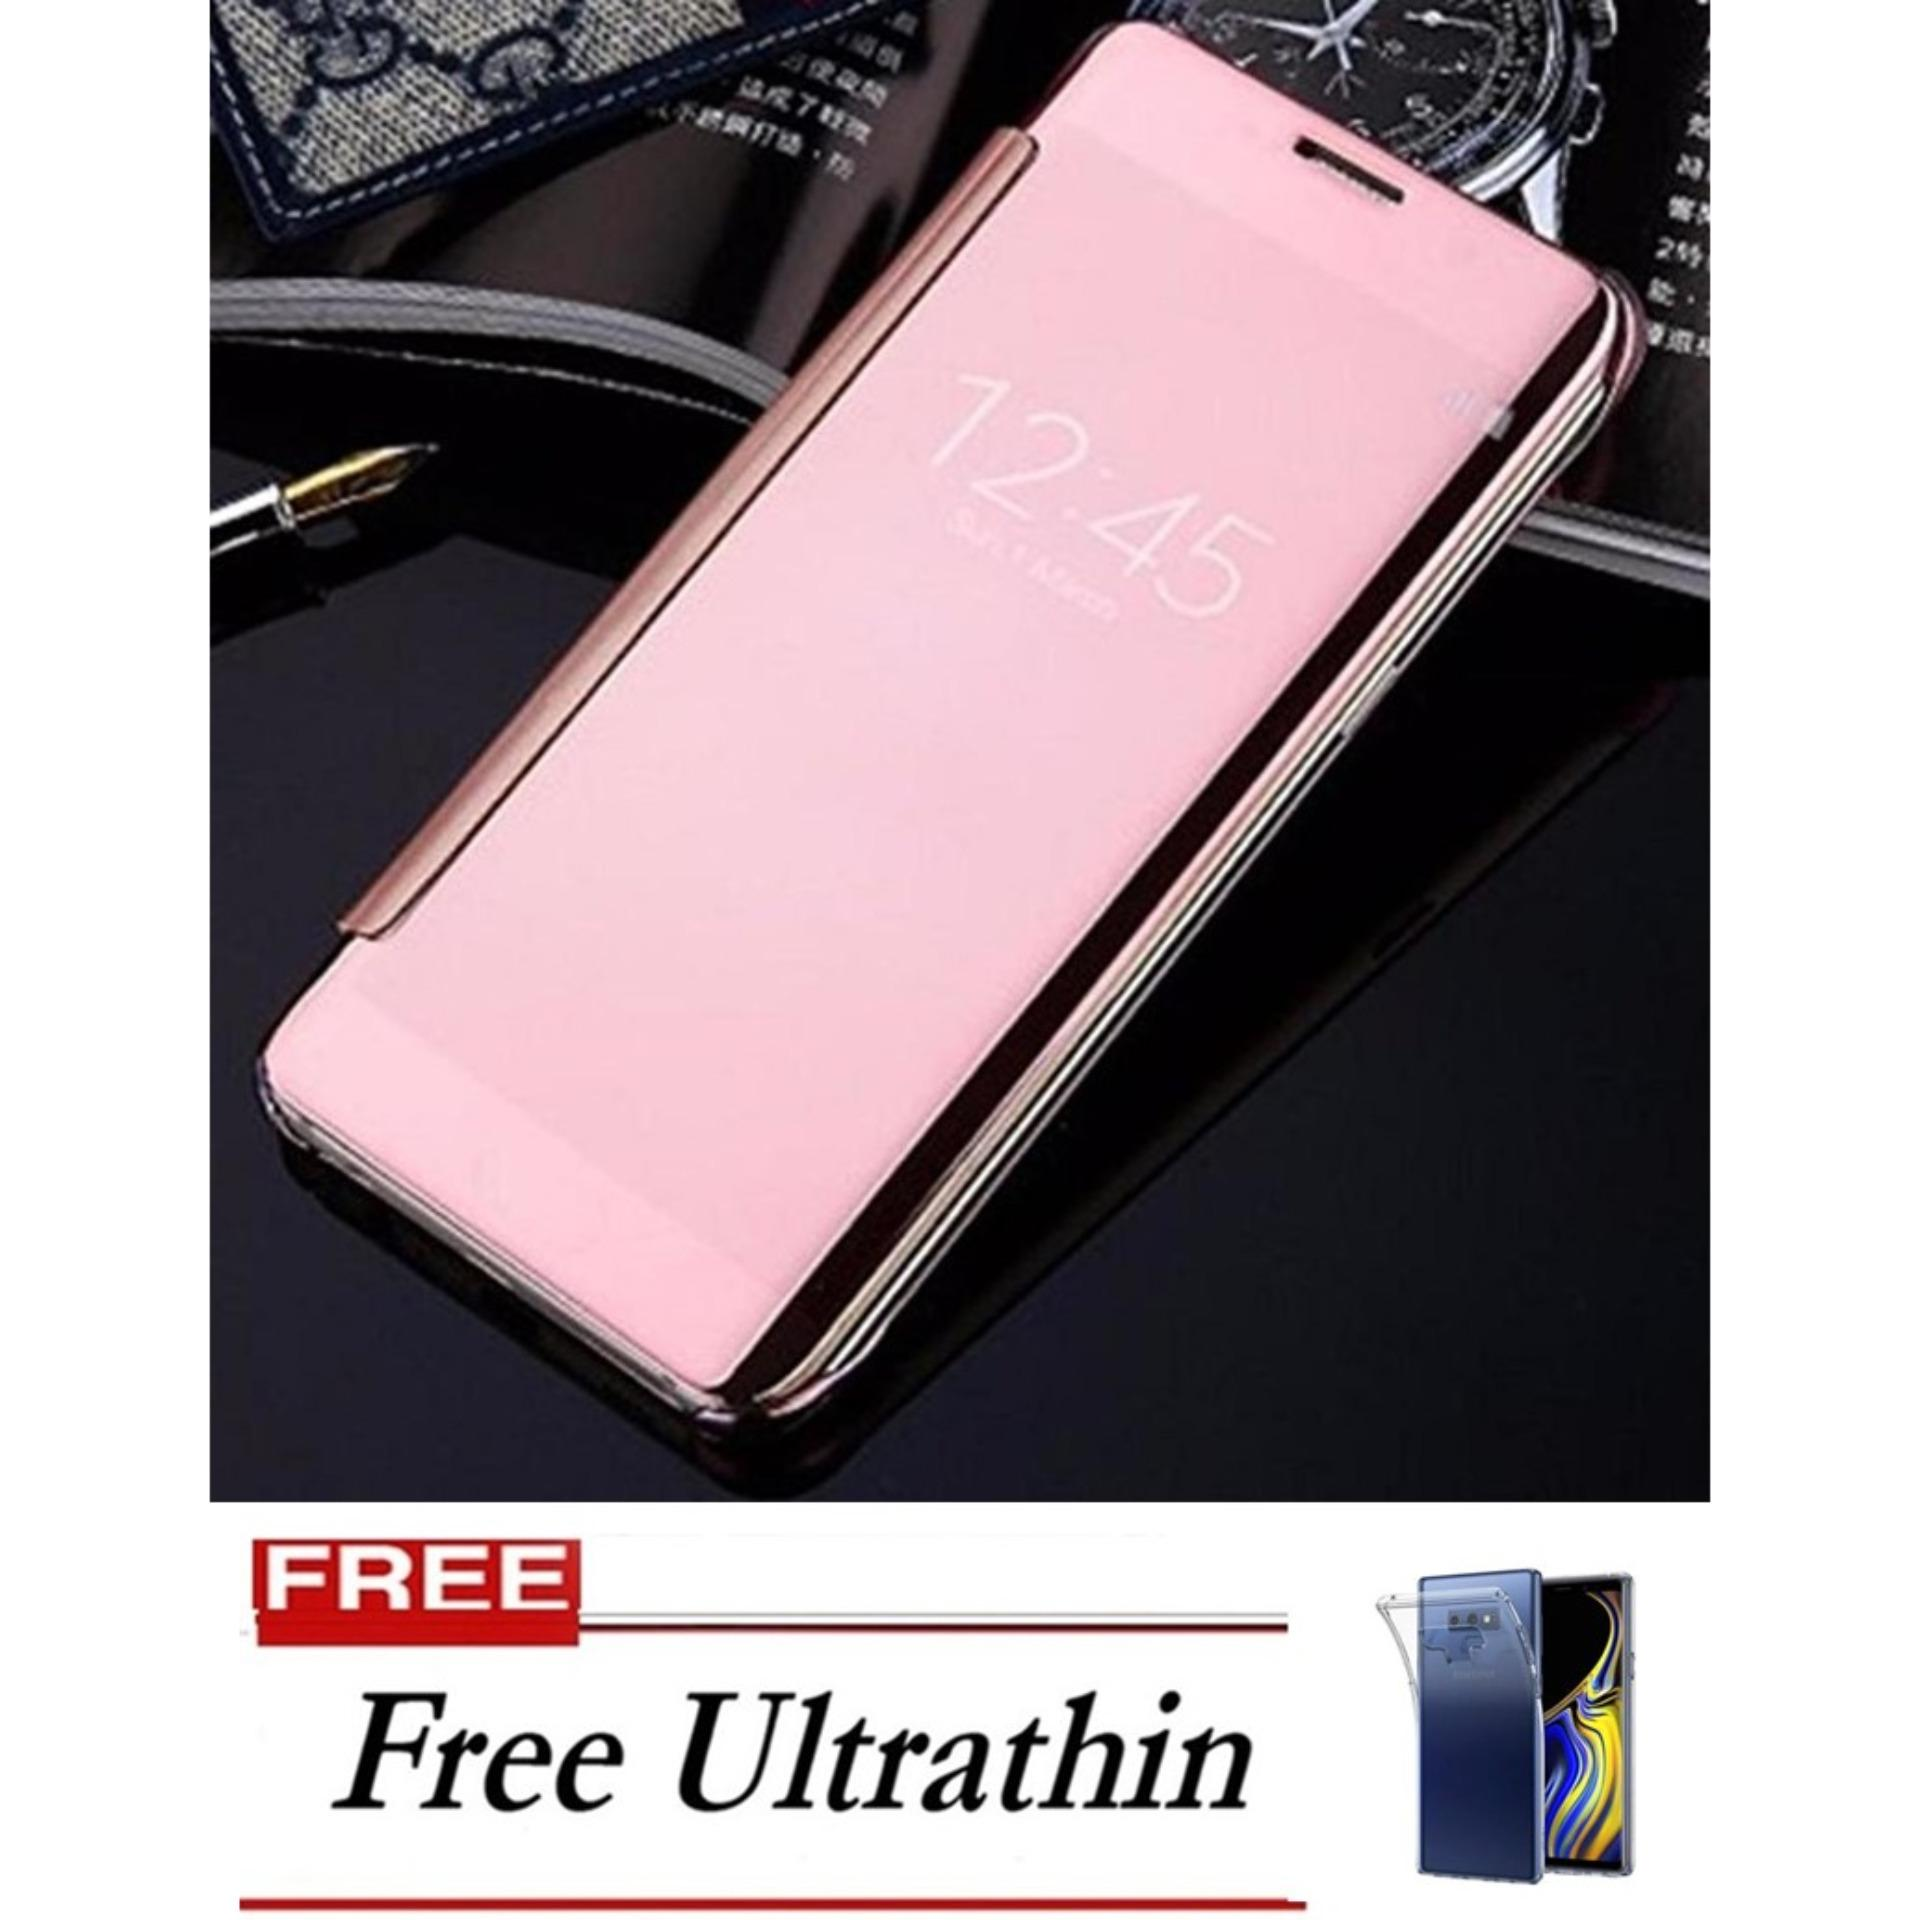 Flip Cover ORIGINAL STANDING CASE Smart S-View Mirror Auto Lock Samsung Galaxy Note 9 – Rose Gold FREE Ultrathin